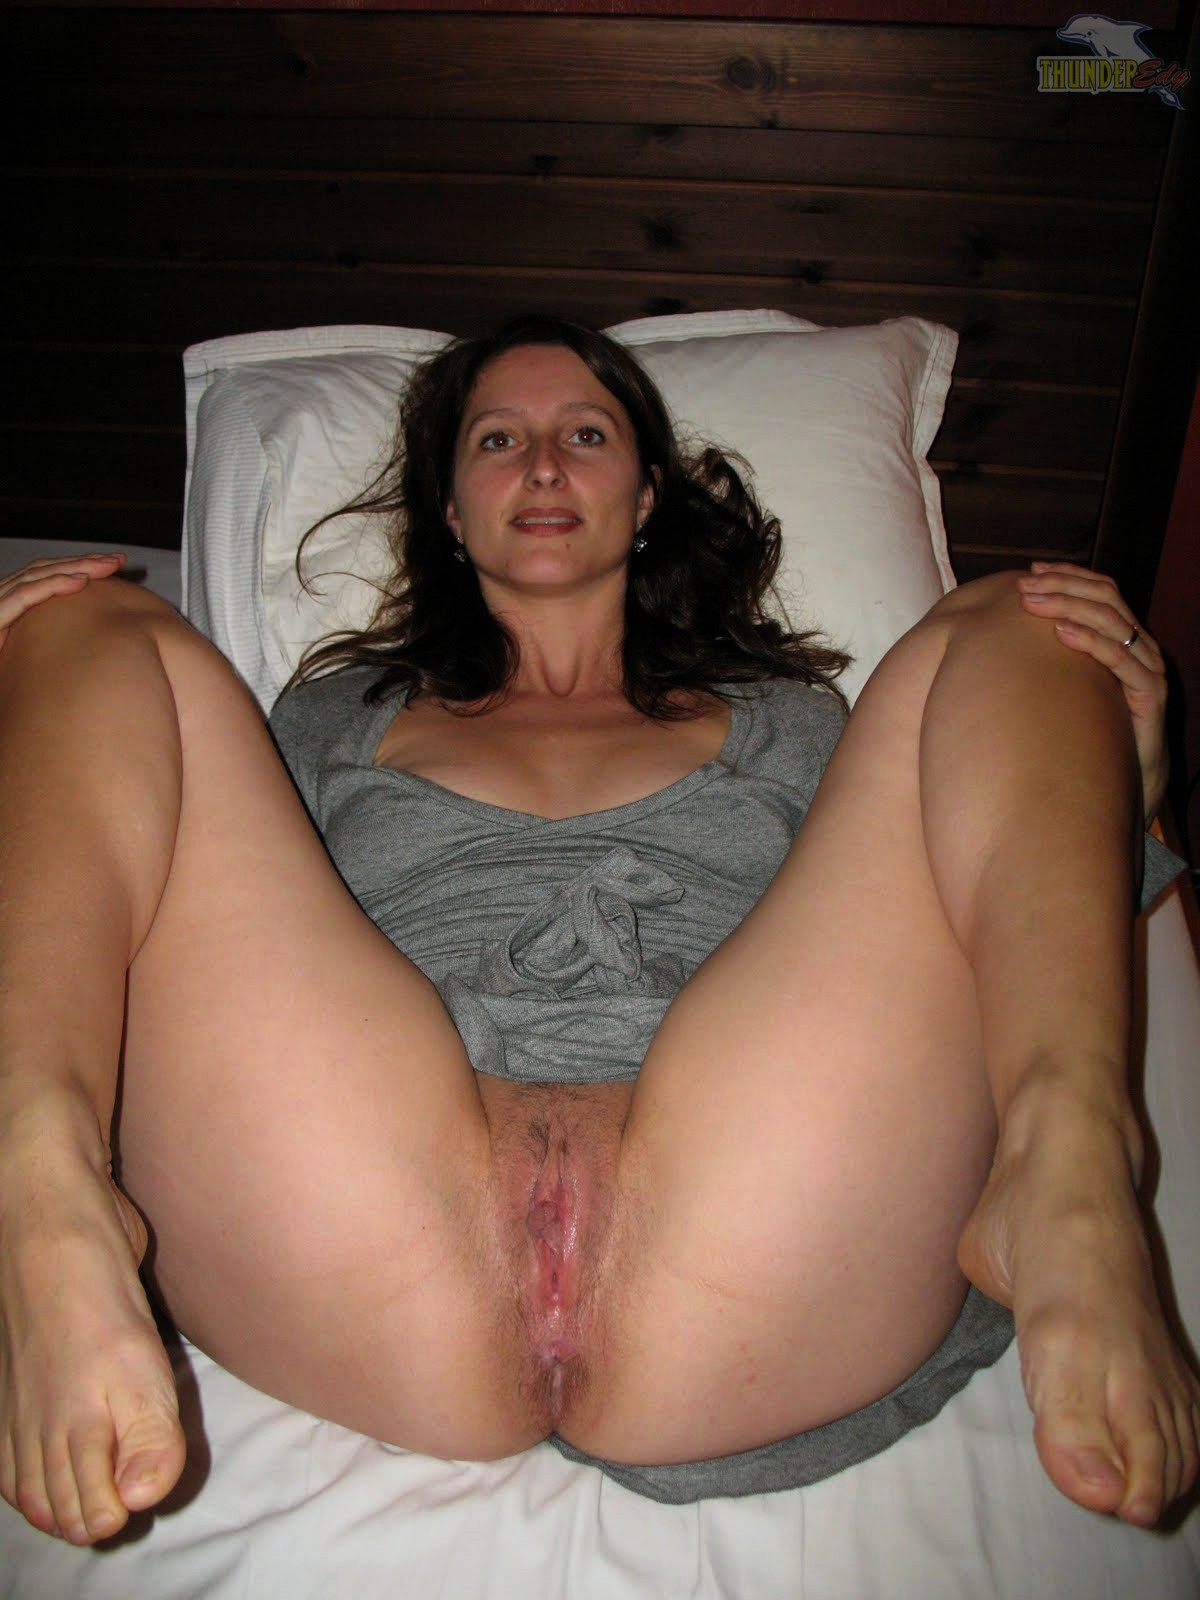 Teen tight pussy images and story